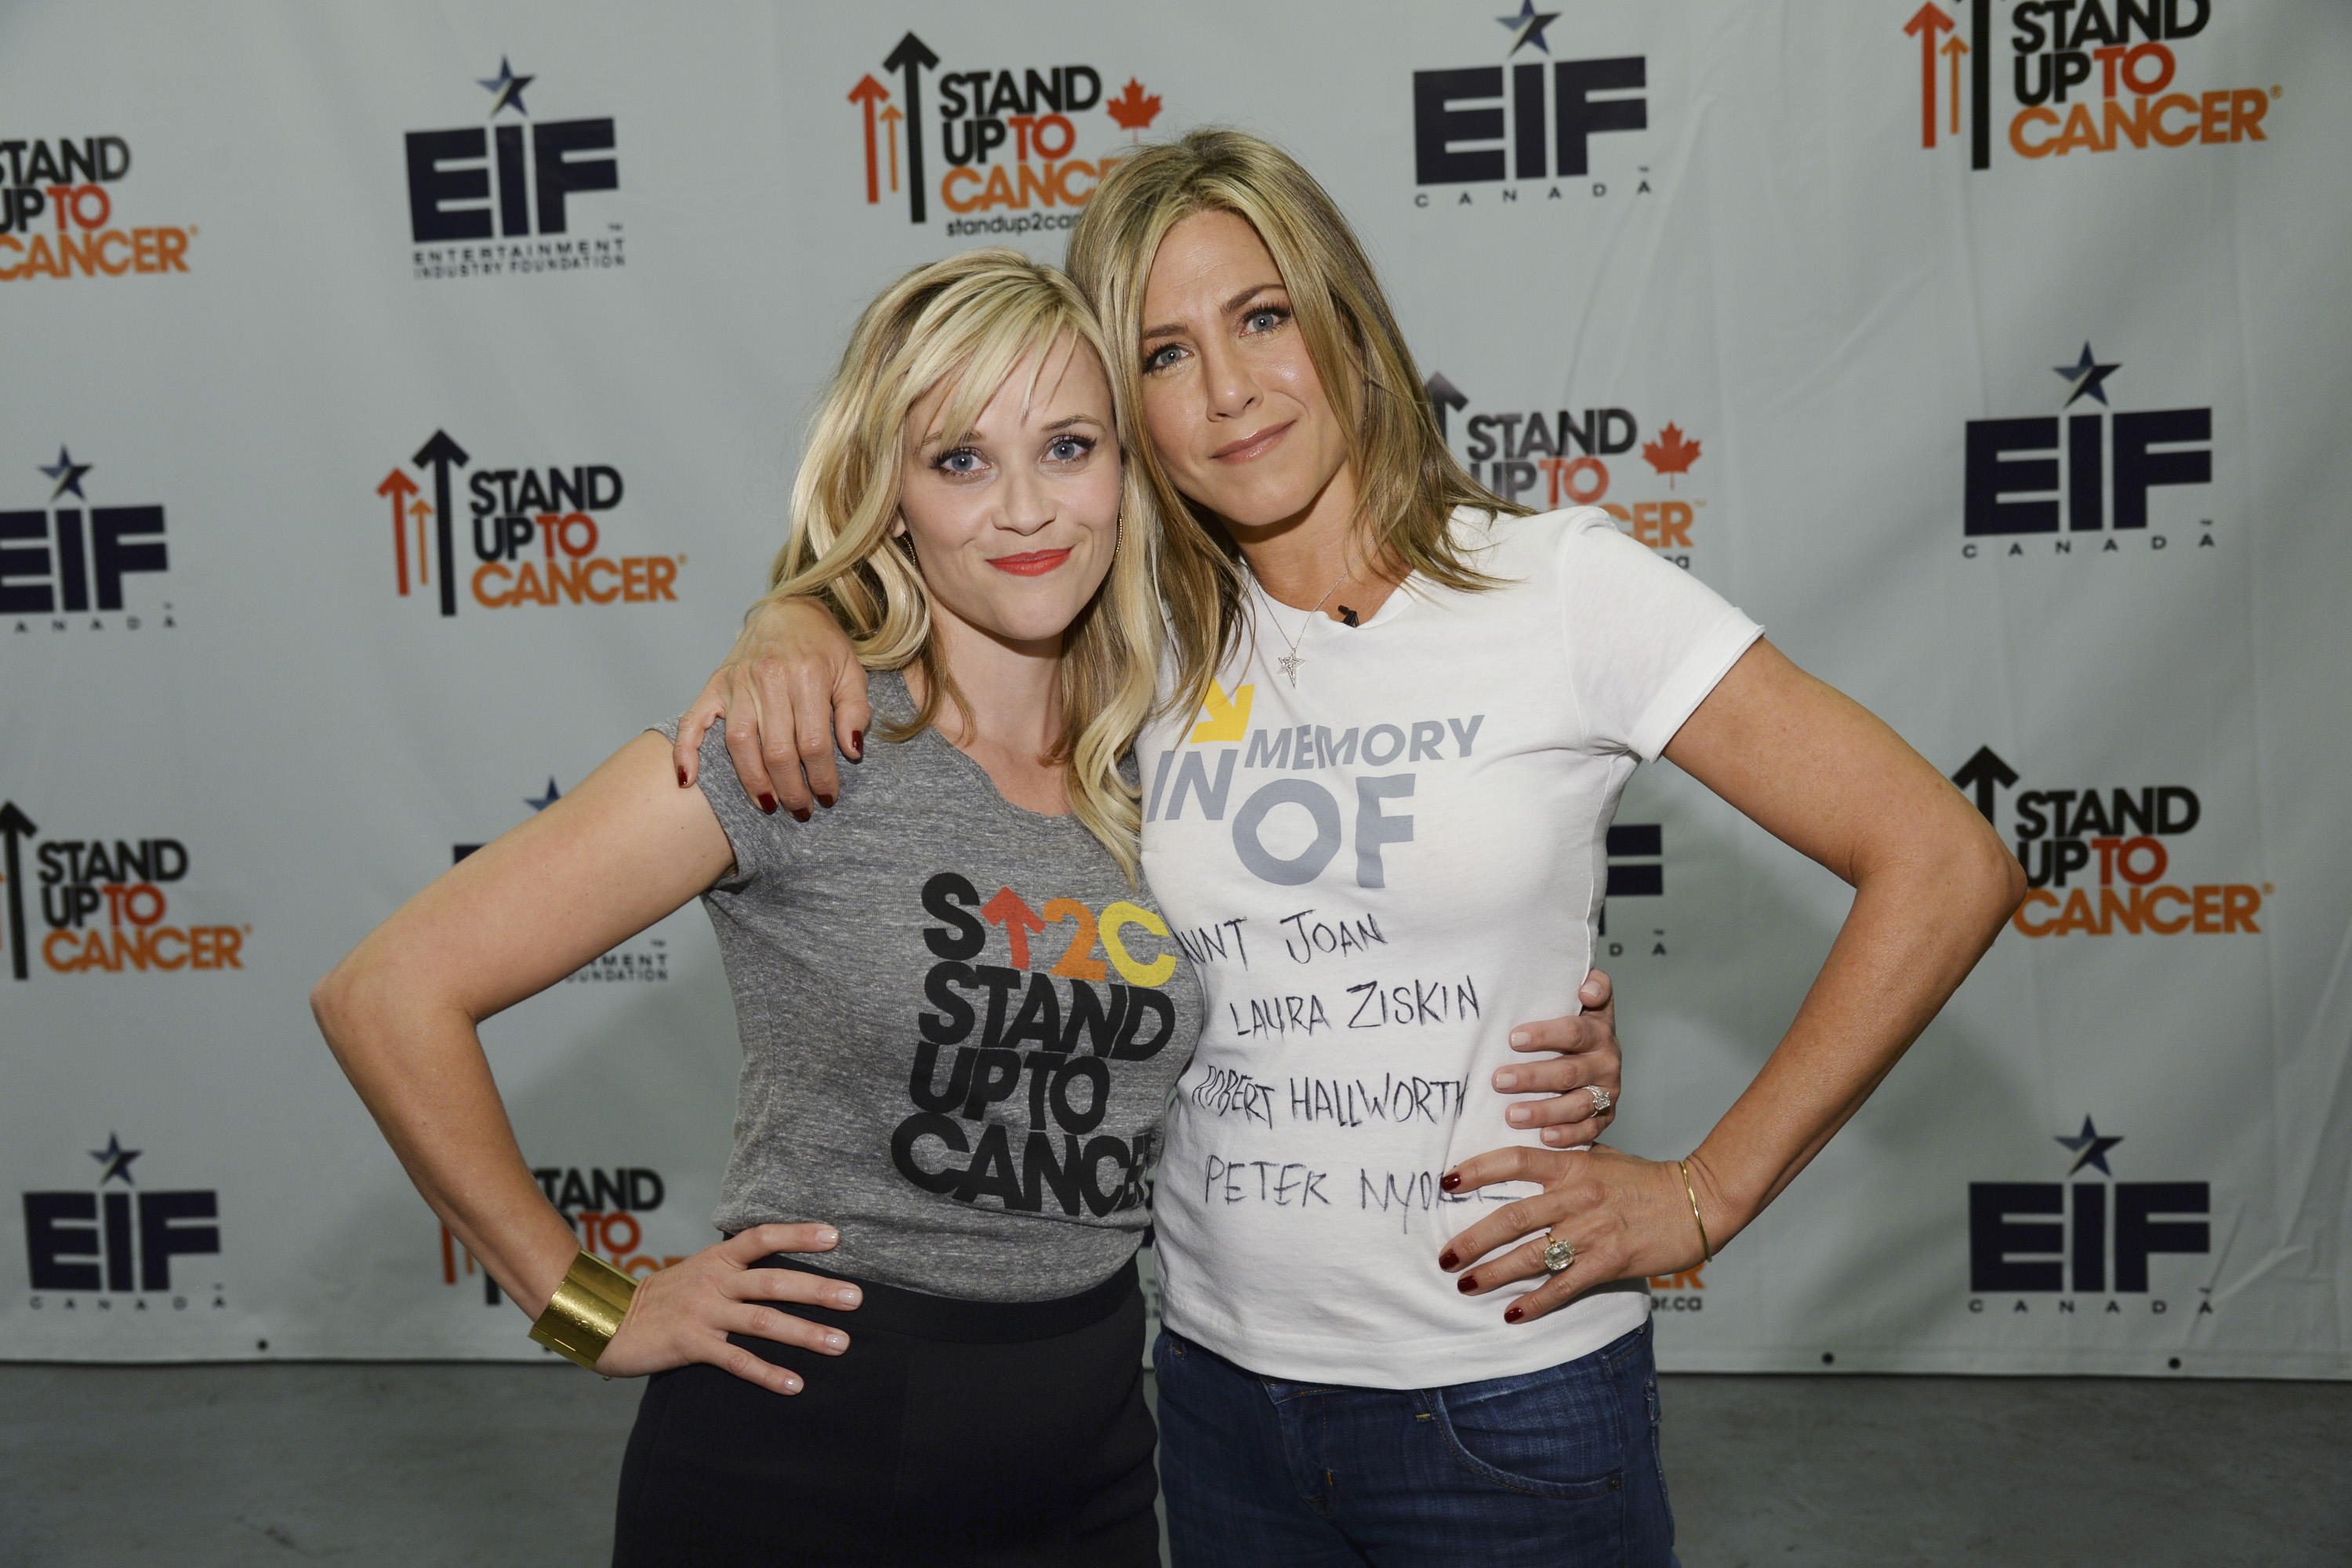 Reese Witherspoon and Jennifer Aniston attend Stand Up To Cancer (SU2C), a program of the Entertainment Industry Foundation (EIF)